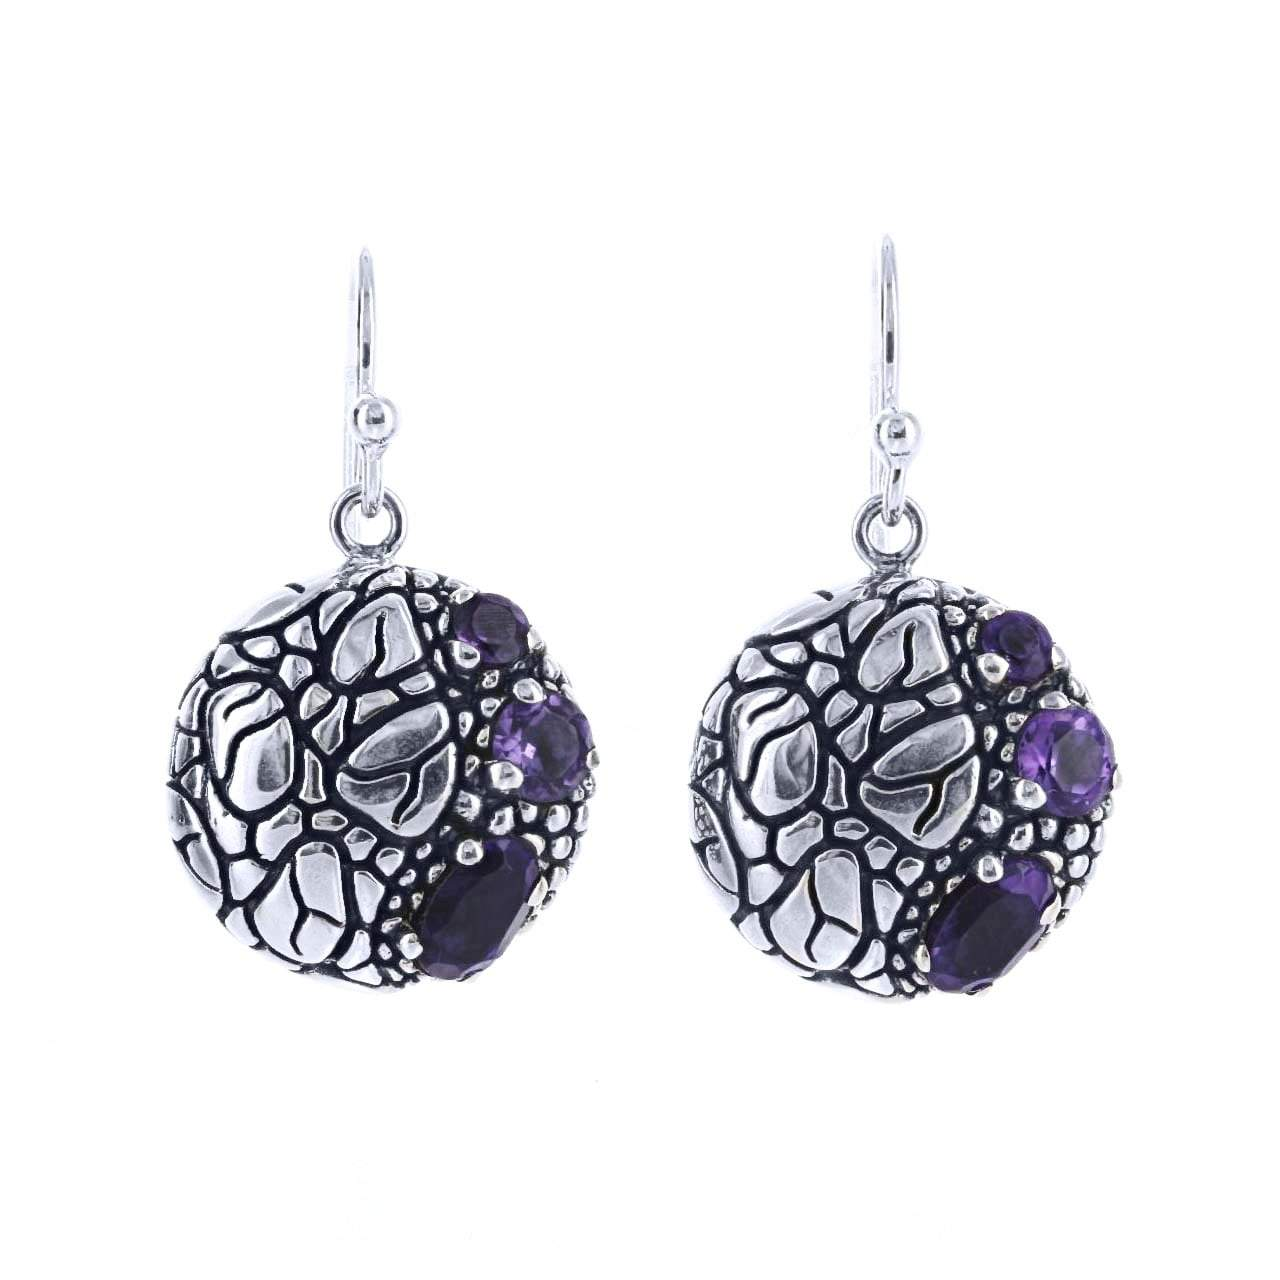 David Beck Bali Earrings Default Title / Silver / Purple David Beck Bali Round Earrings in Sterling Silver and Amethyst 1150490